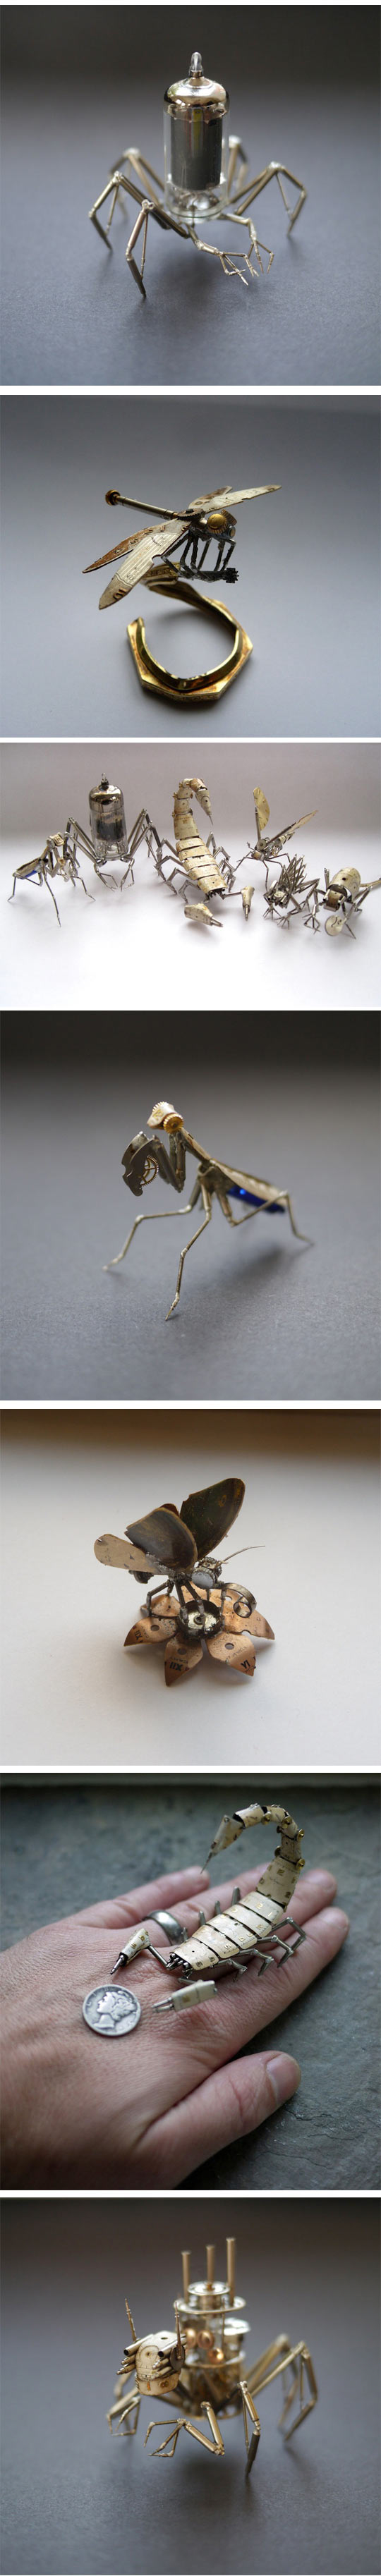 cool-insects-steampunk-watch-parts-metal